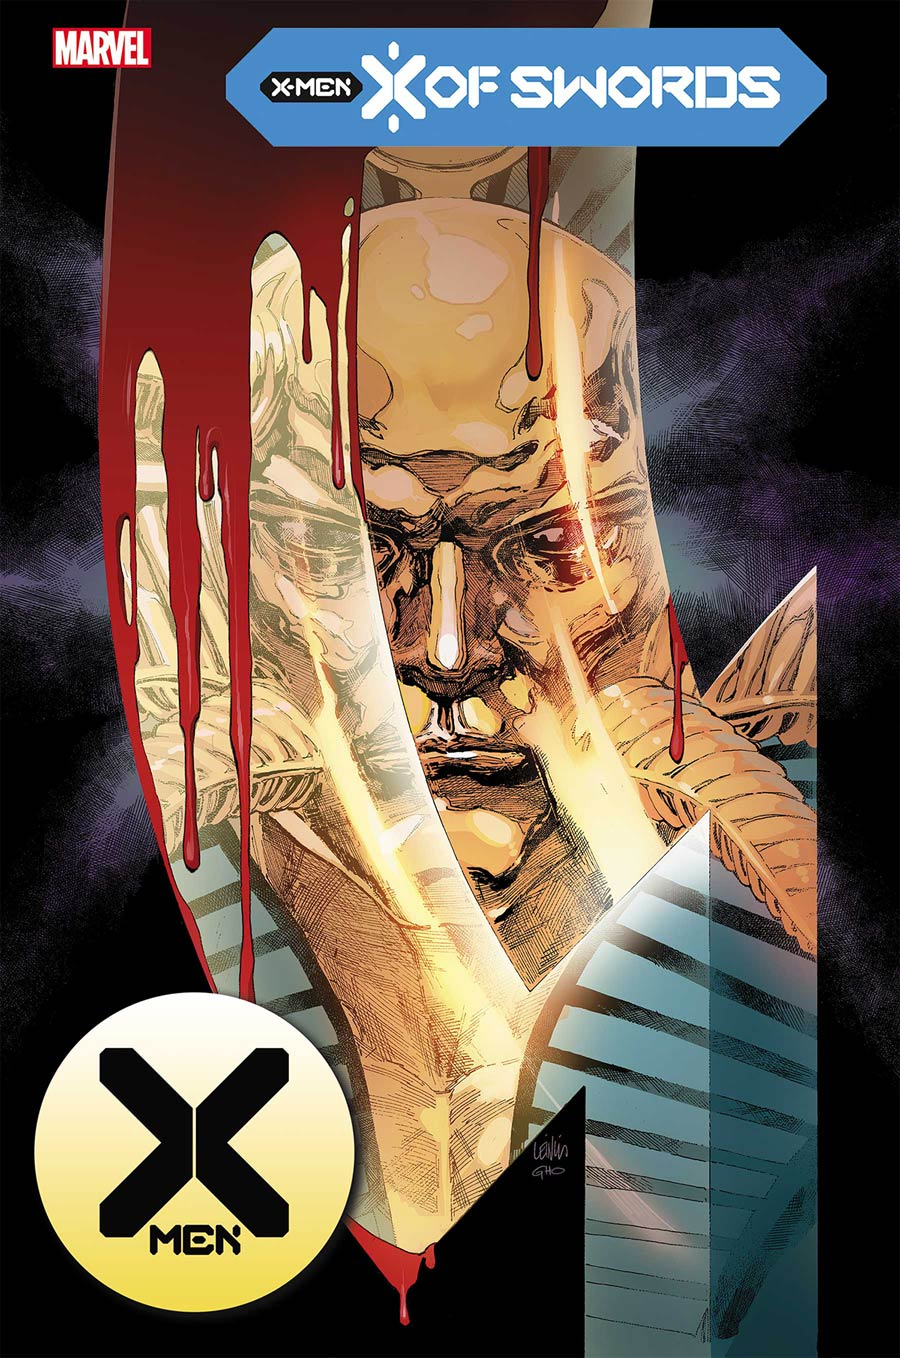 X-Men Vol 5 #15 Cover A Regular Leinil Francis Yu Cover (X Of Swords Part 20)